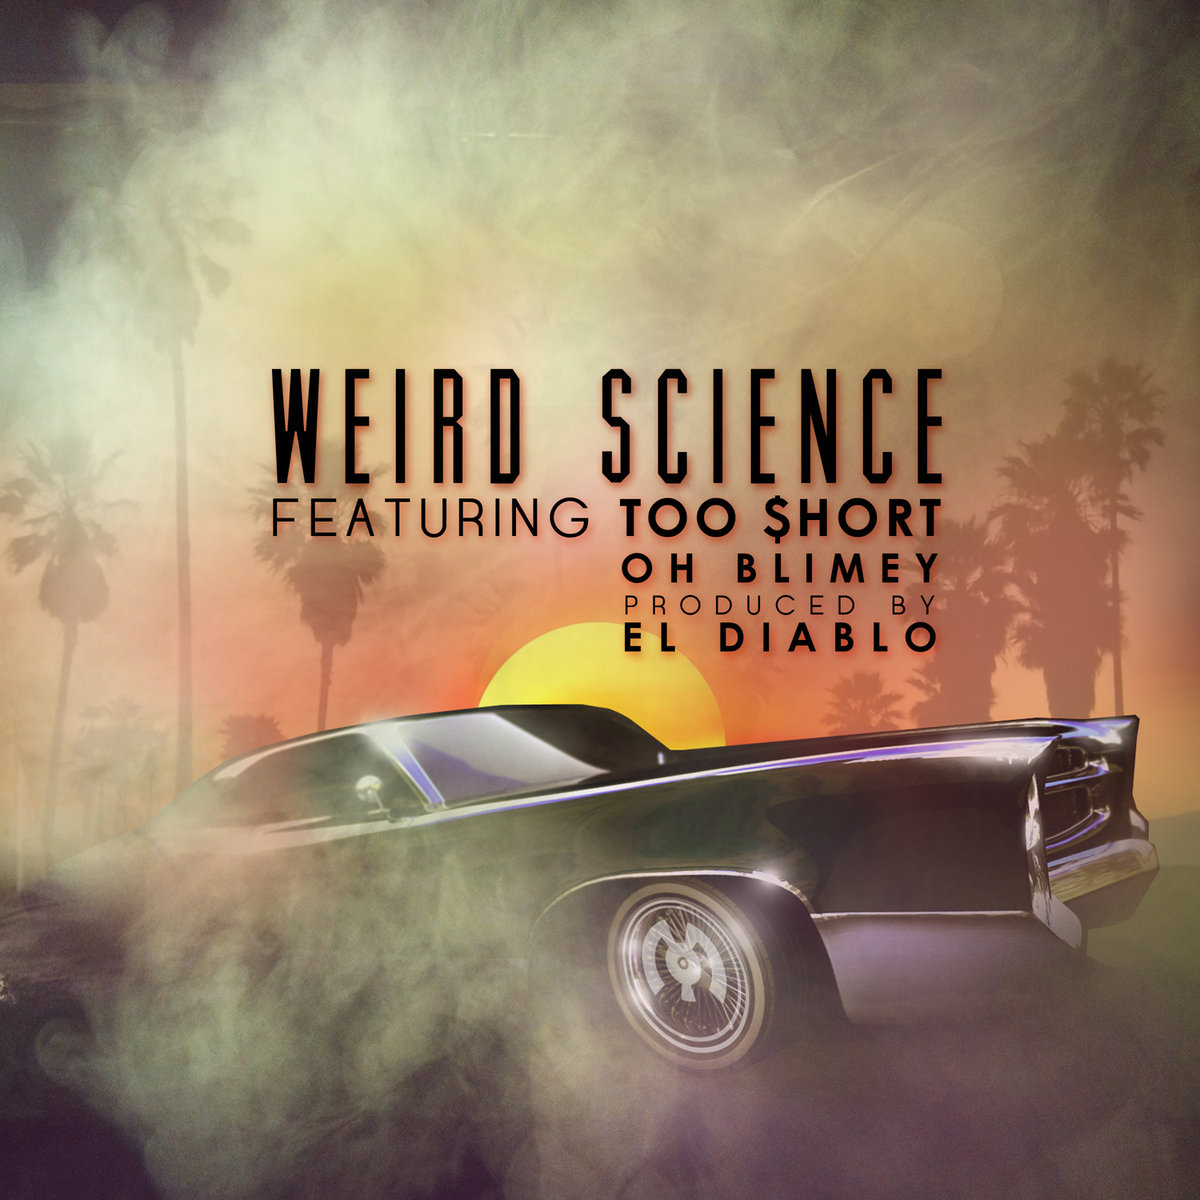 Too $hort, Oh Blimey, El Diablo - Weird Science @ 'Weird Science' album (electronic, dubstep)